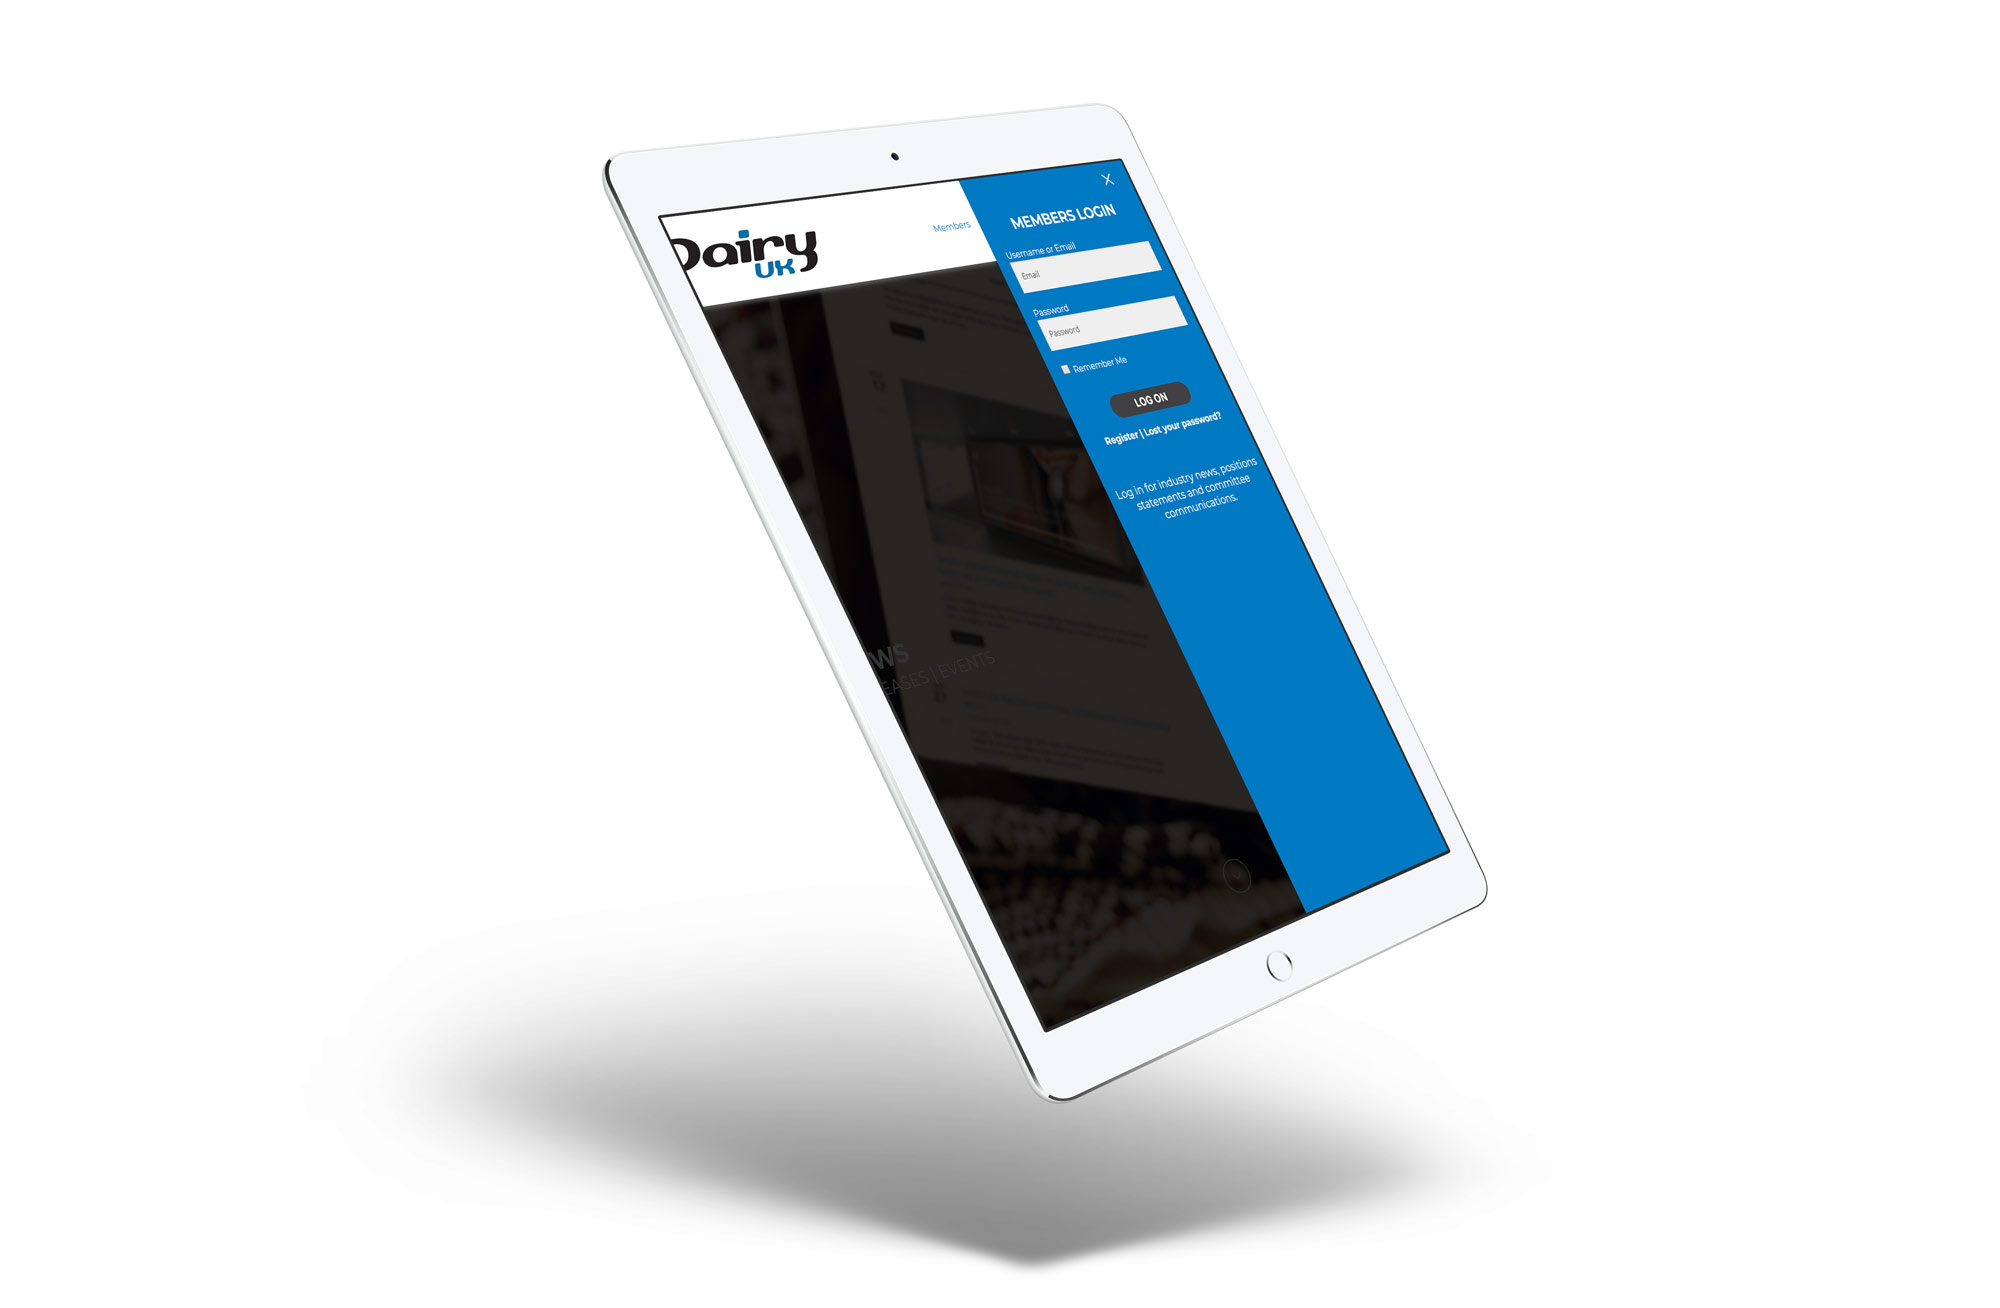 dairyuk website ipad mockup